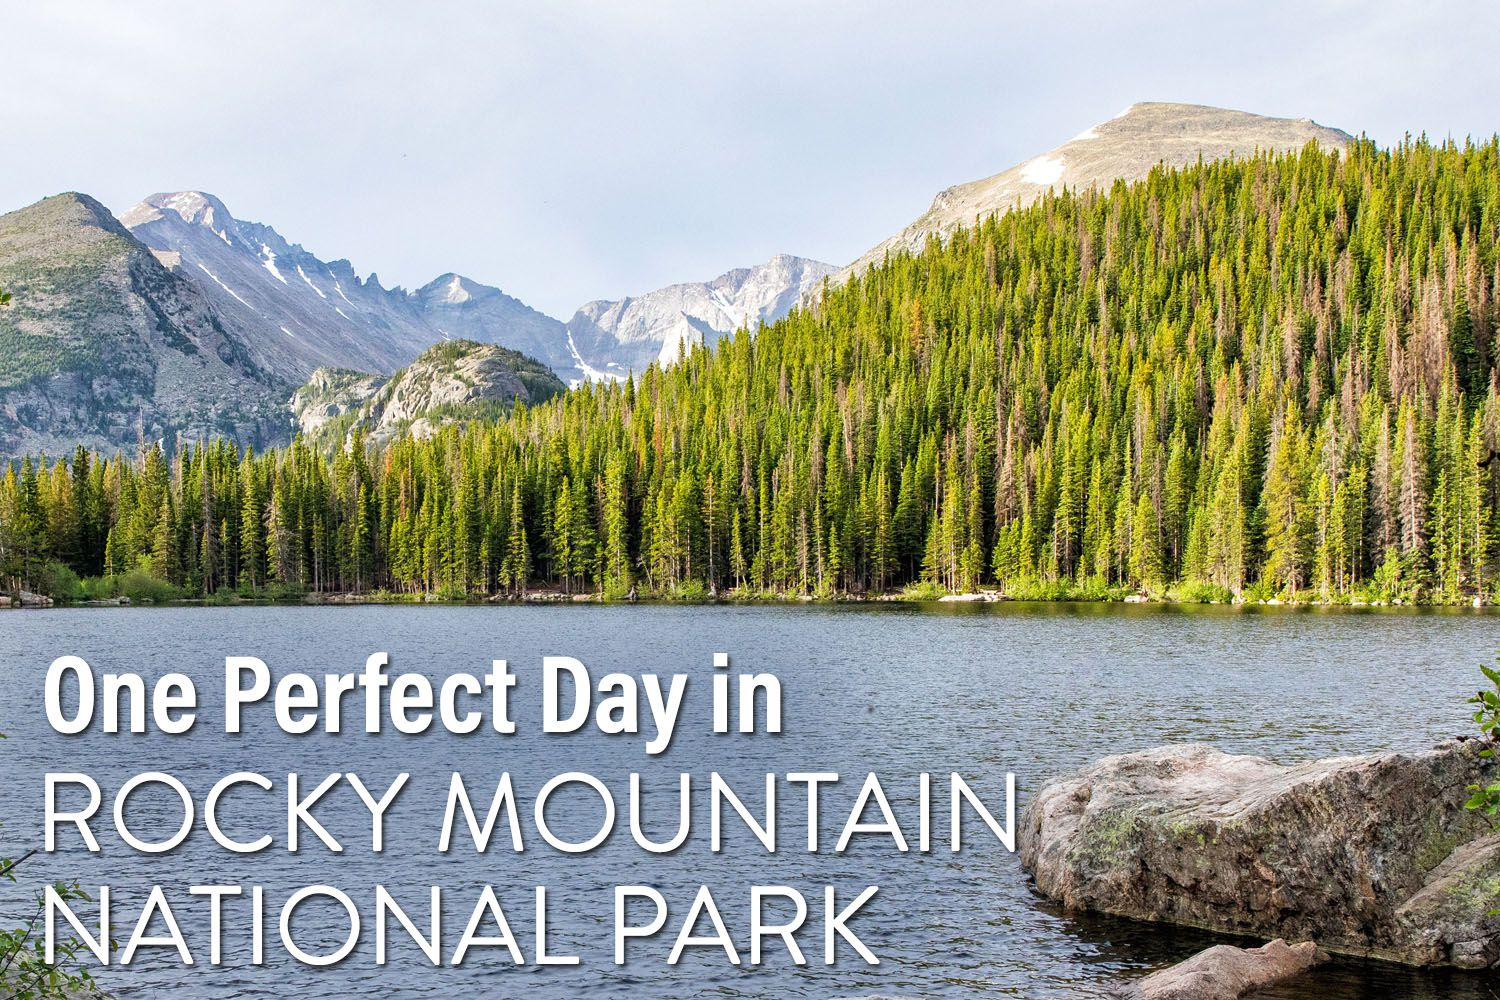 One Day in Rocky Mountain National Park